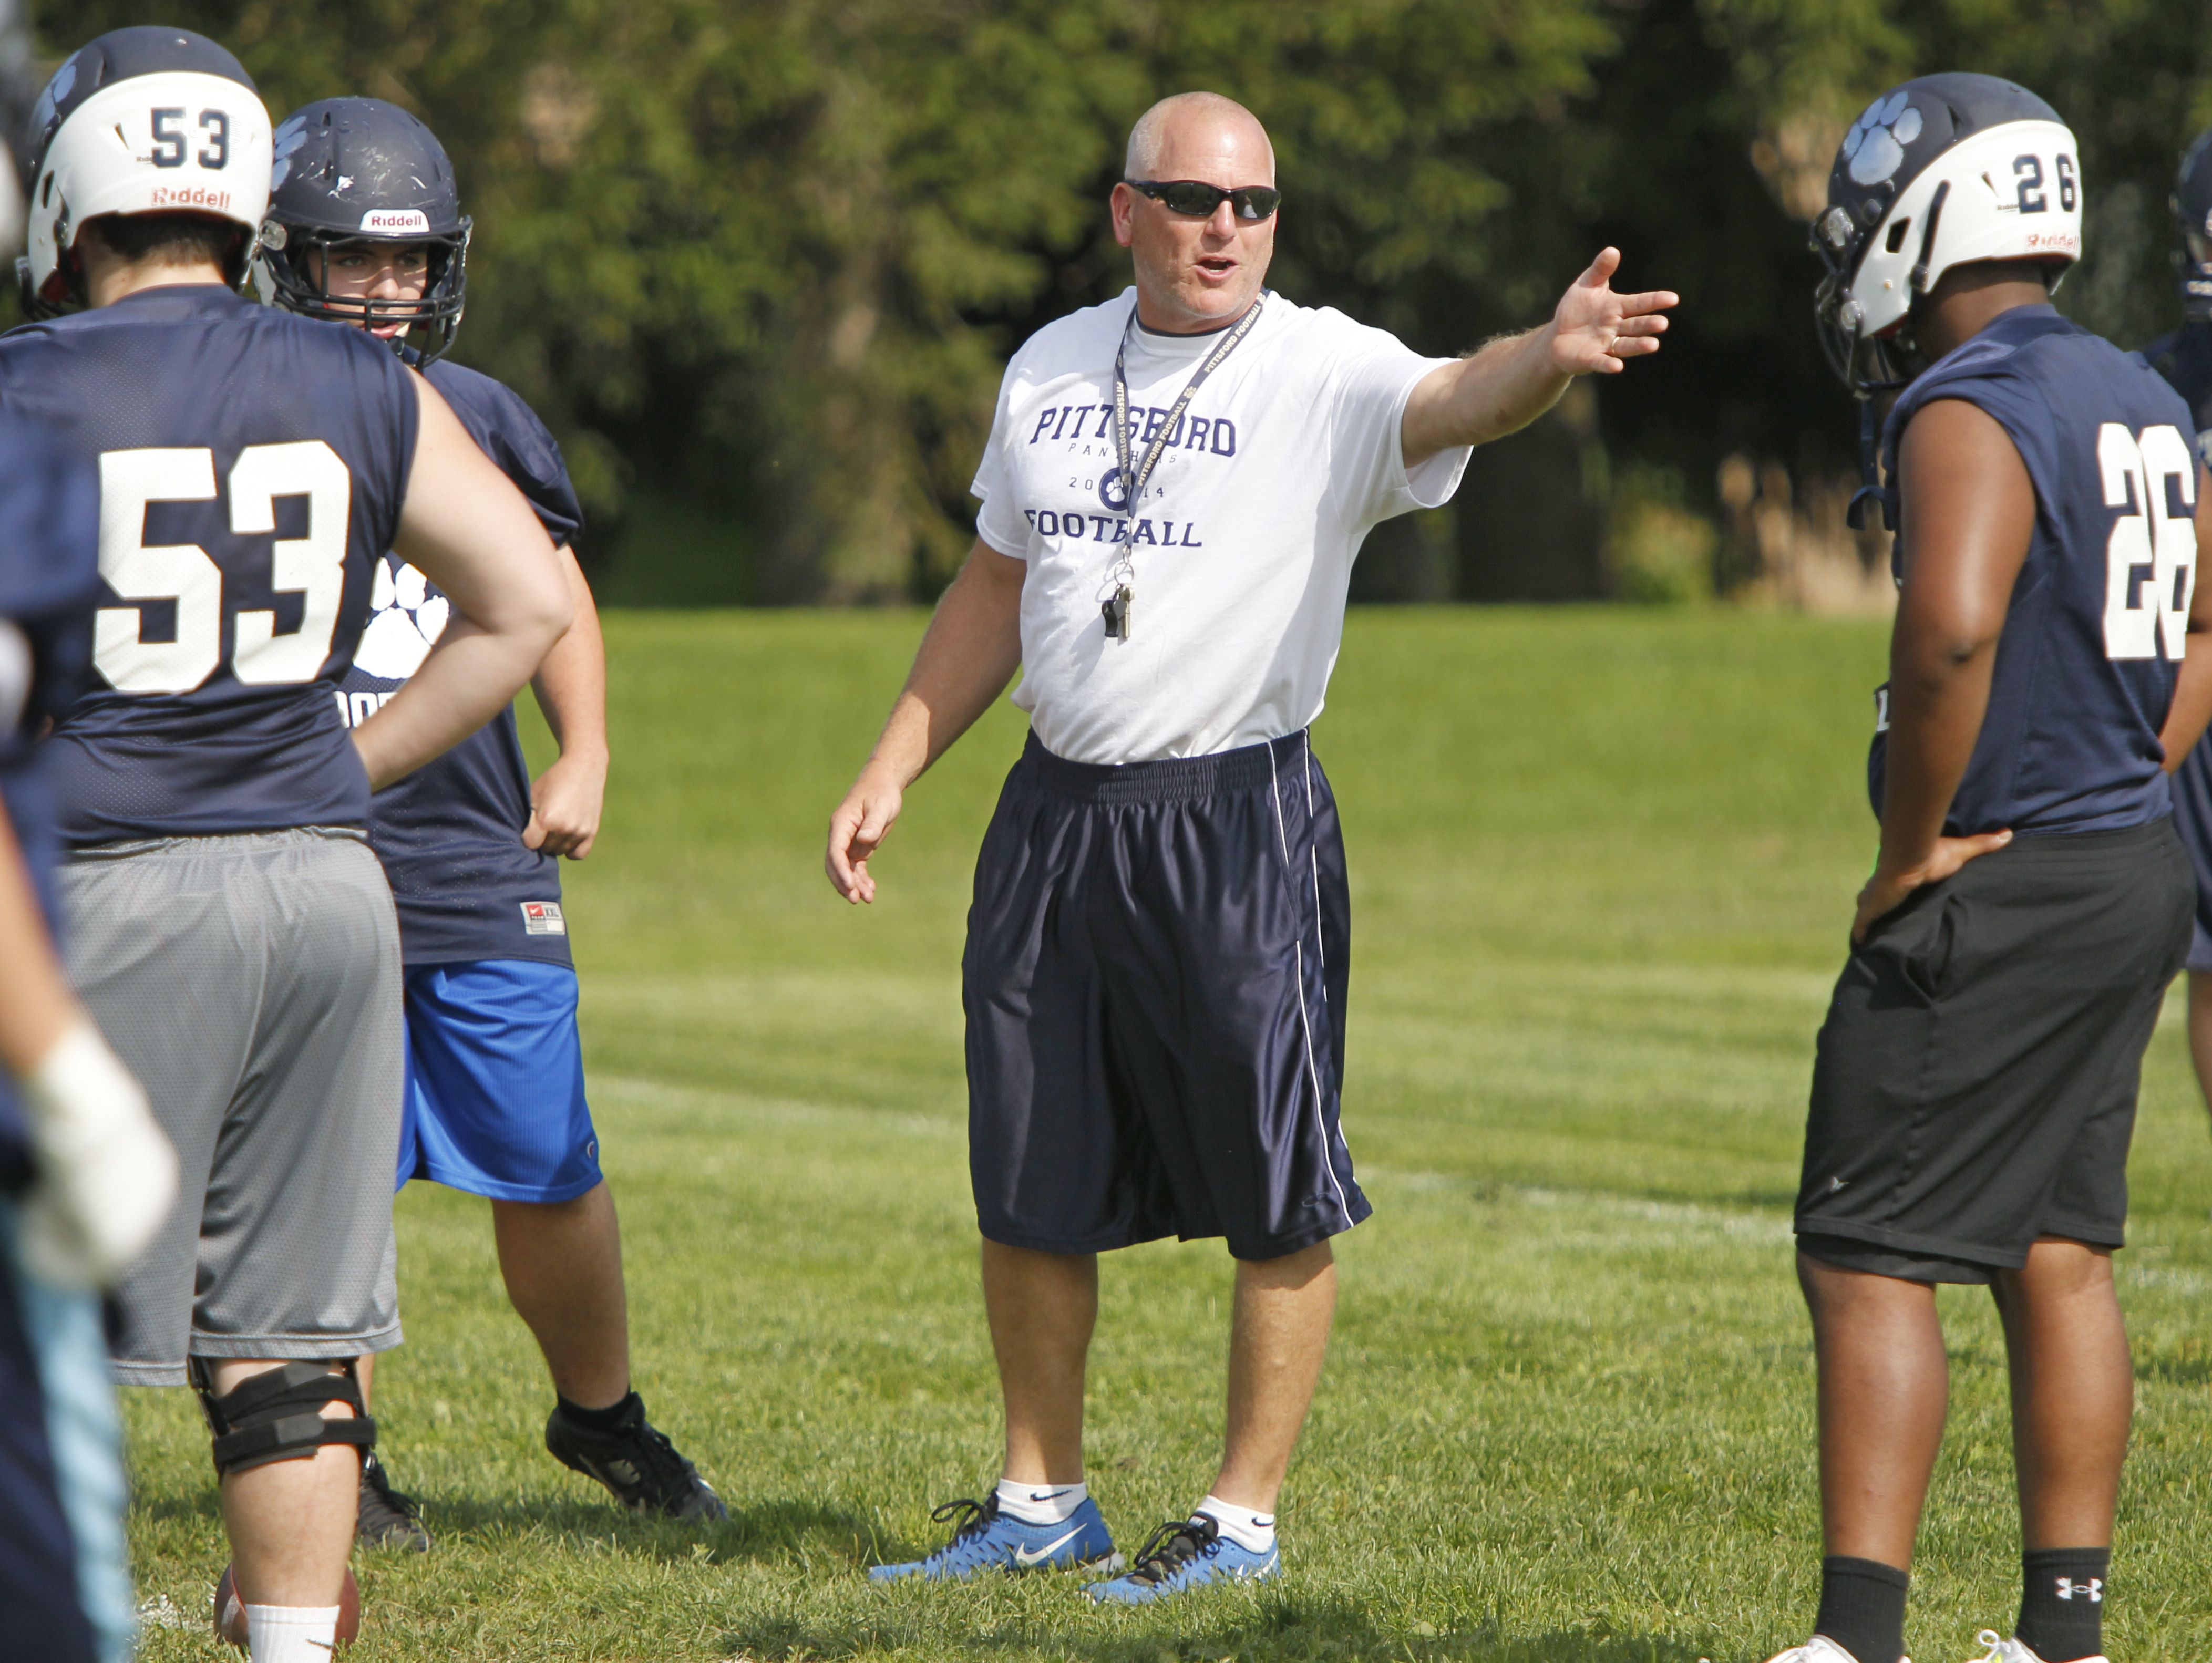 Pittsford head coach Keith Molinich directs his lineman through drills during their practice in this 2014 file photo.